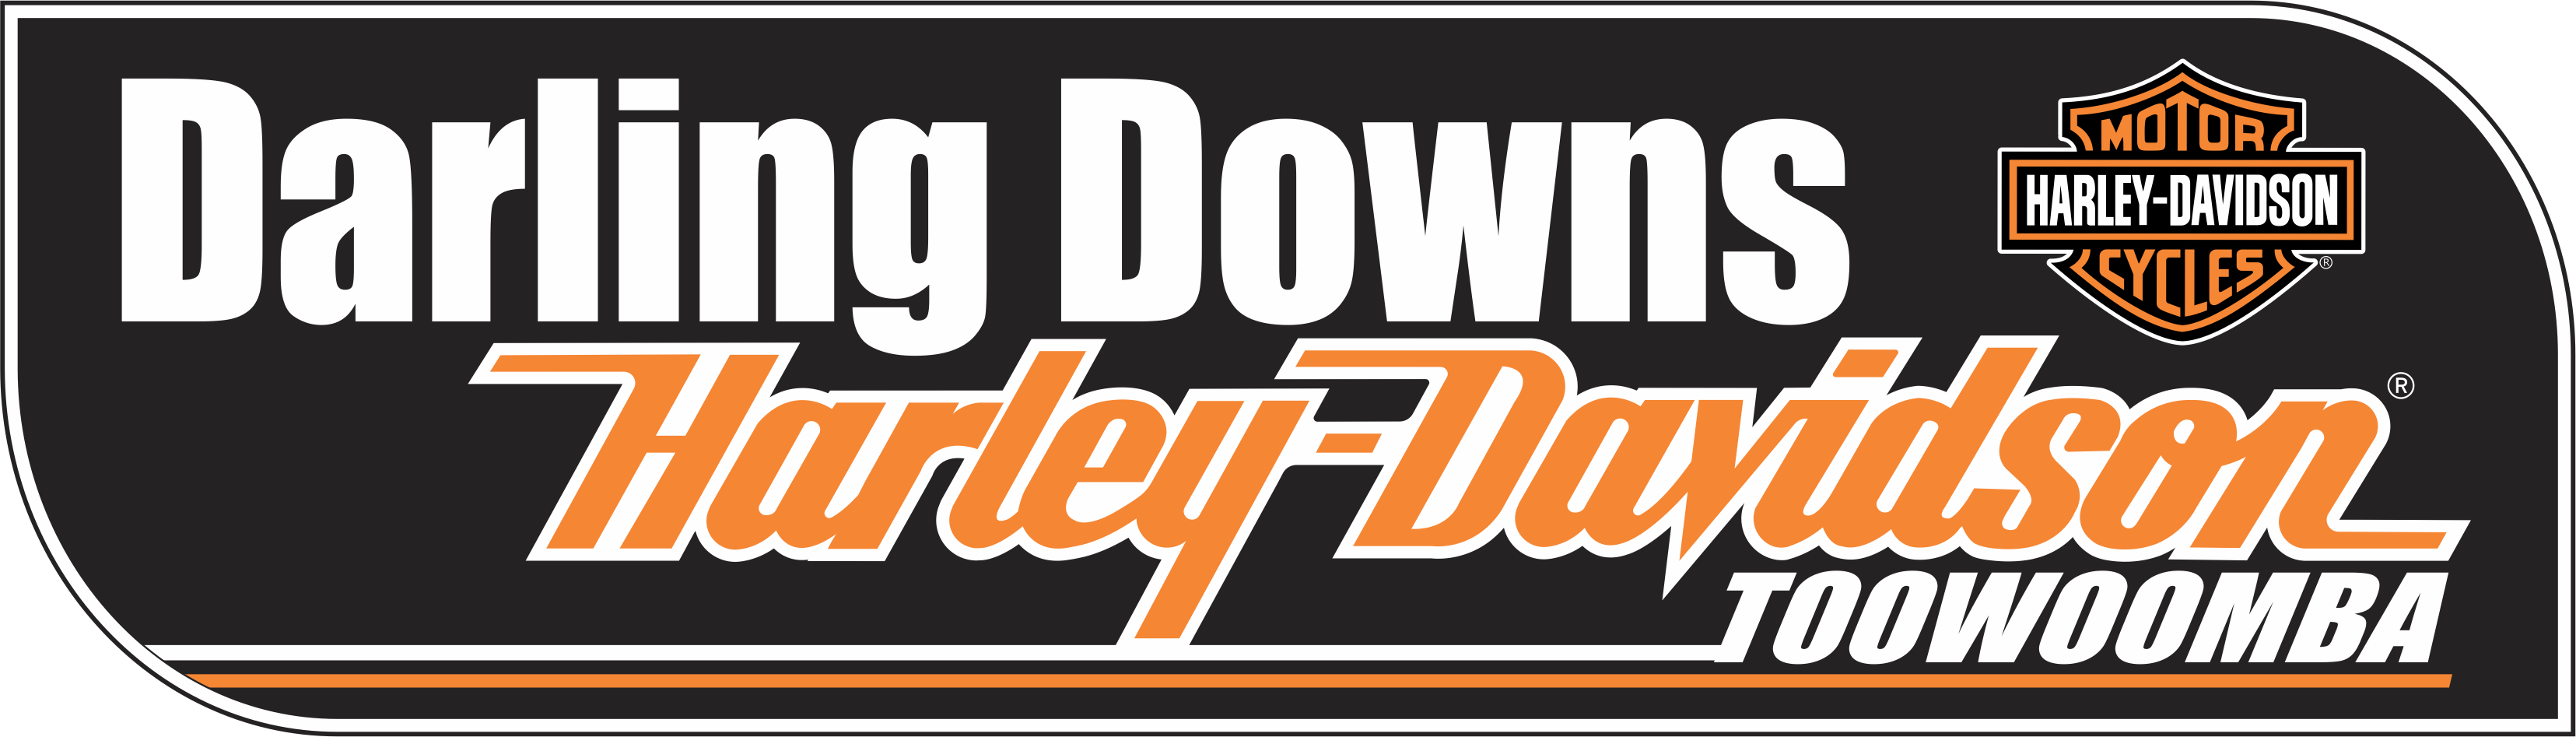 Darling Downs Harley-Davidson<sup>®</sup>